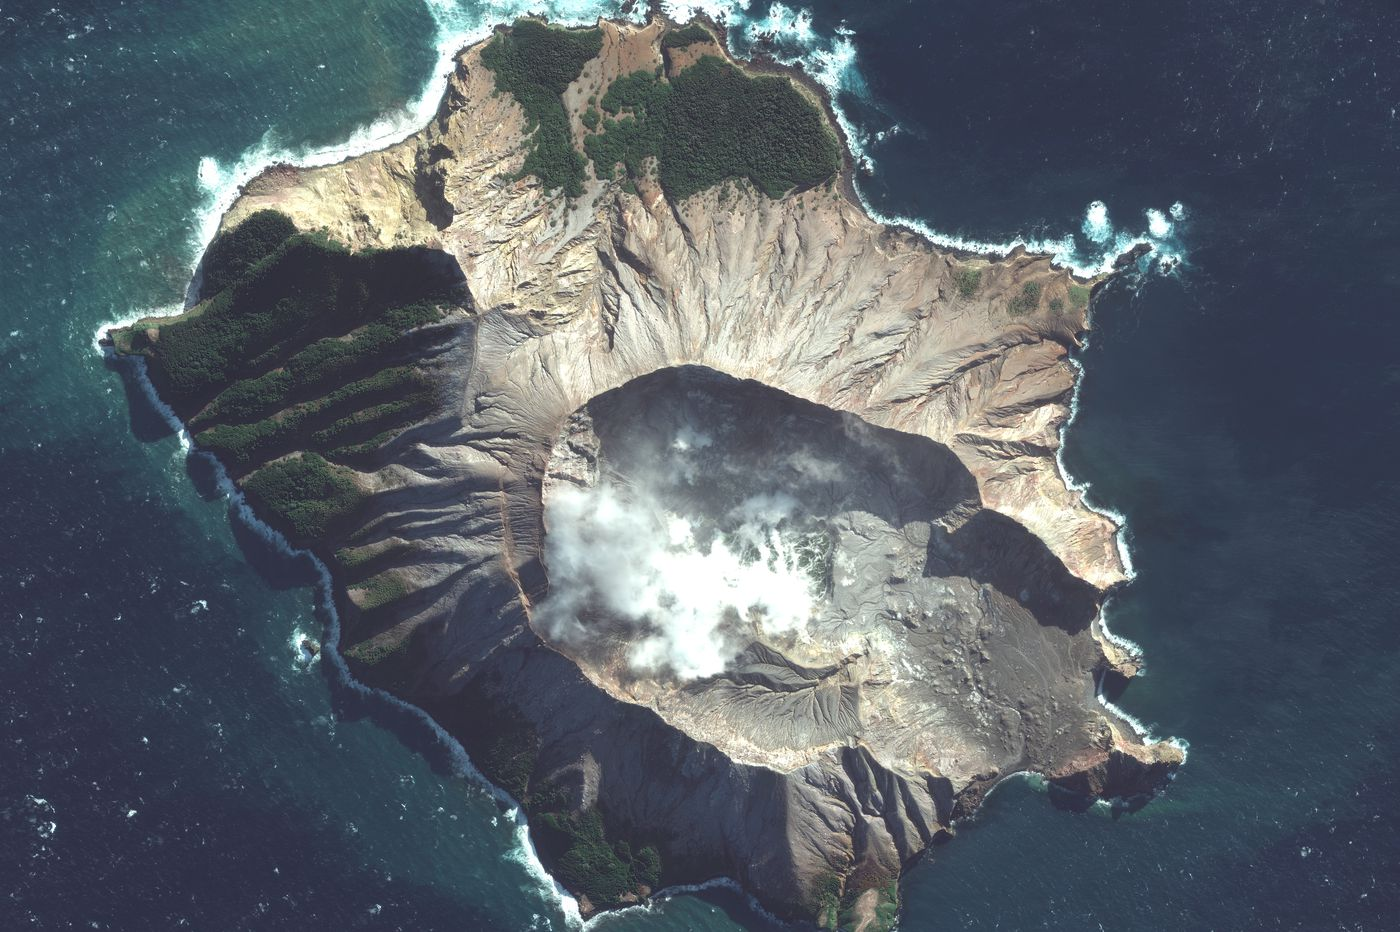 New Zealand launches risky mission to recover bodies from White Island as volcano threatens to erupt again